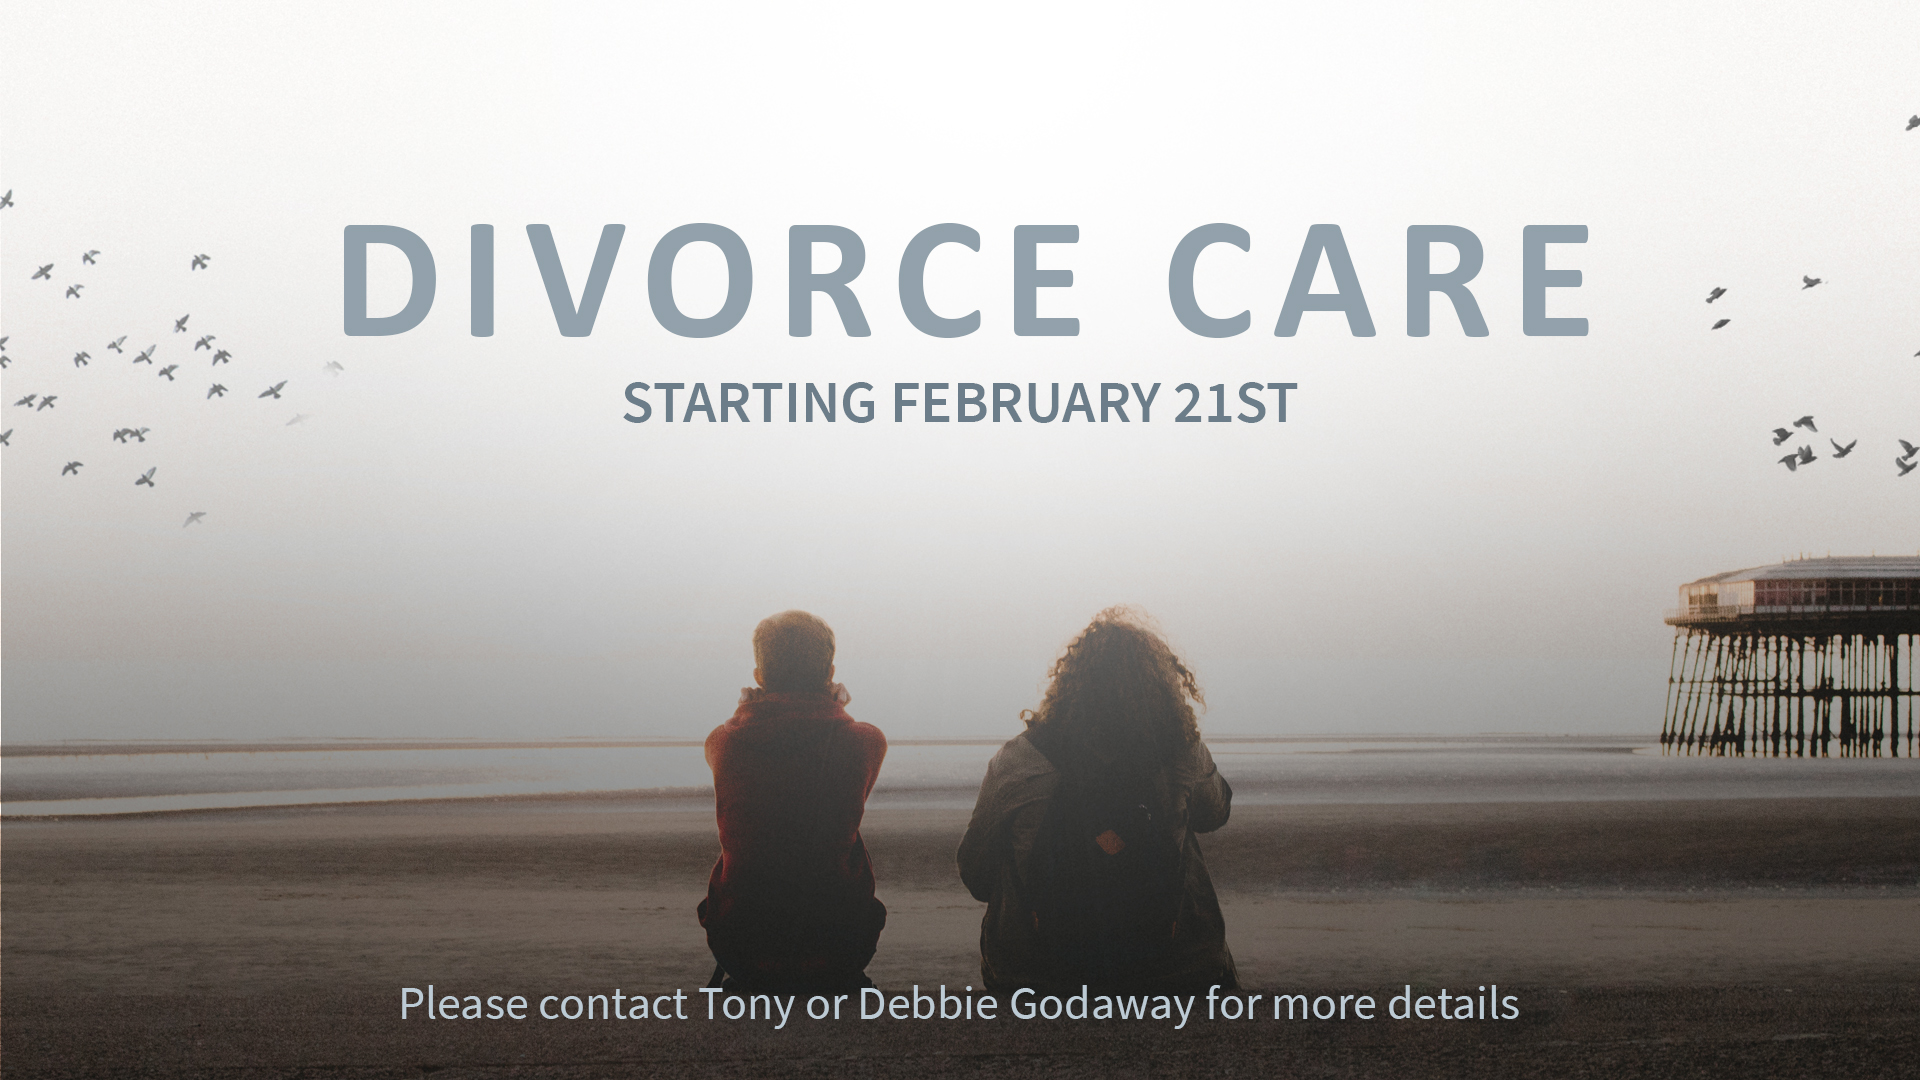 Divorce care feb 21